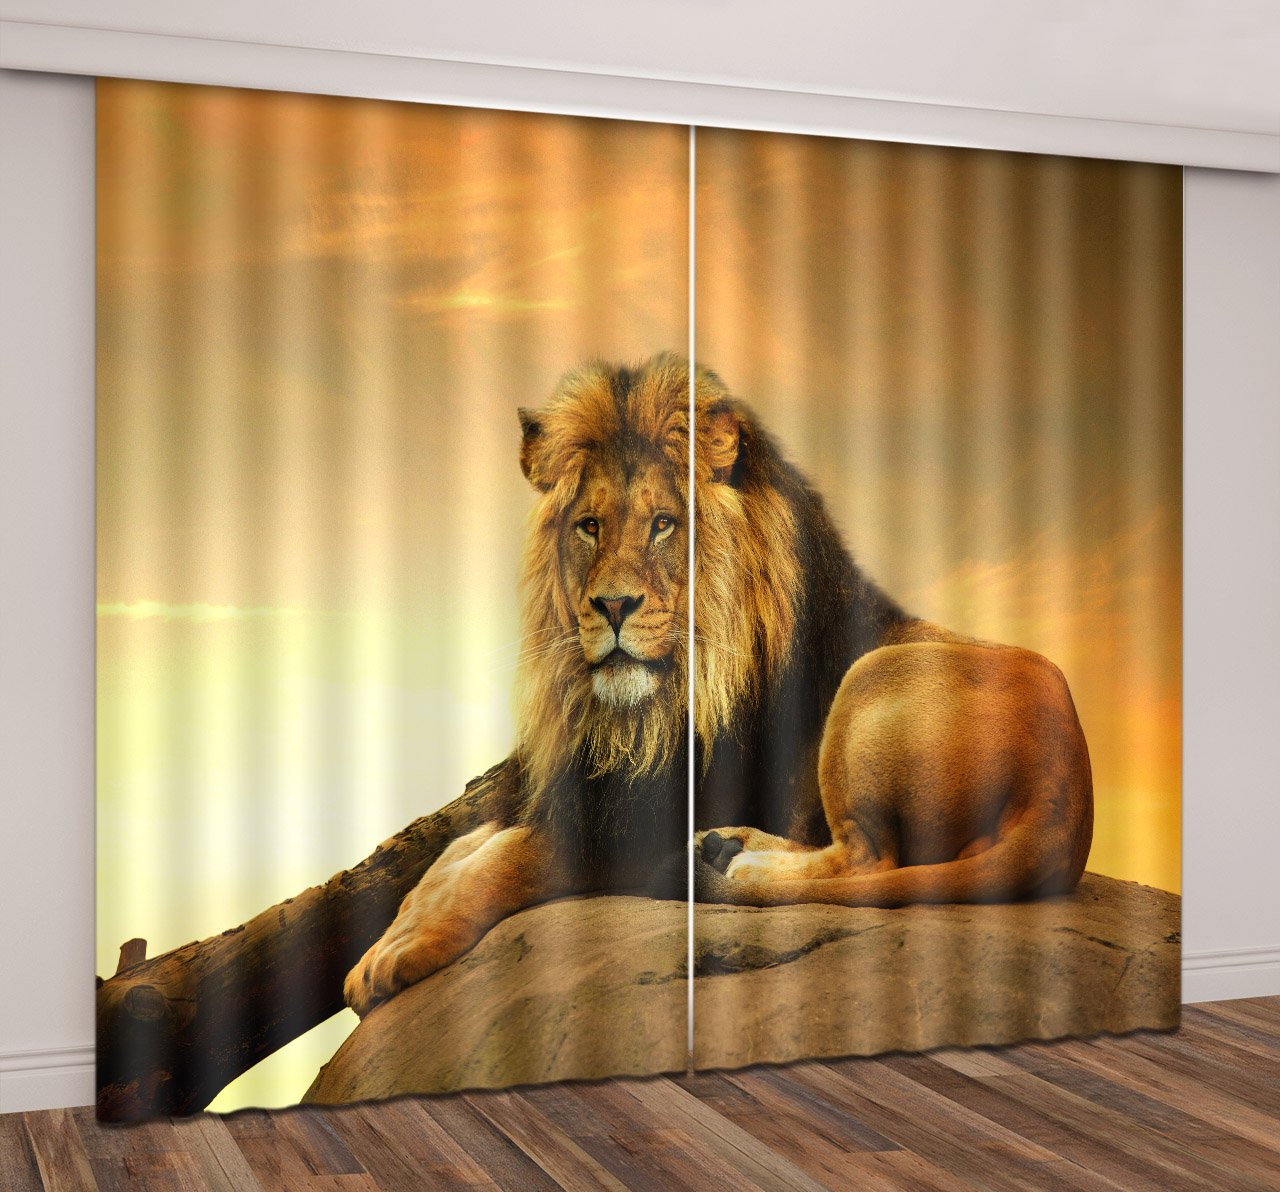 LB Teen Kids Animals Decor Room Darkening Thermal Insulated Blackout Curtains,Lying Lion 3D Window Curtains Drapes Living Room Bedroom 2 Panels Set,28 in Width 65 inch Length by LB (Image #3)